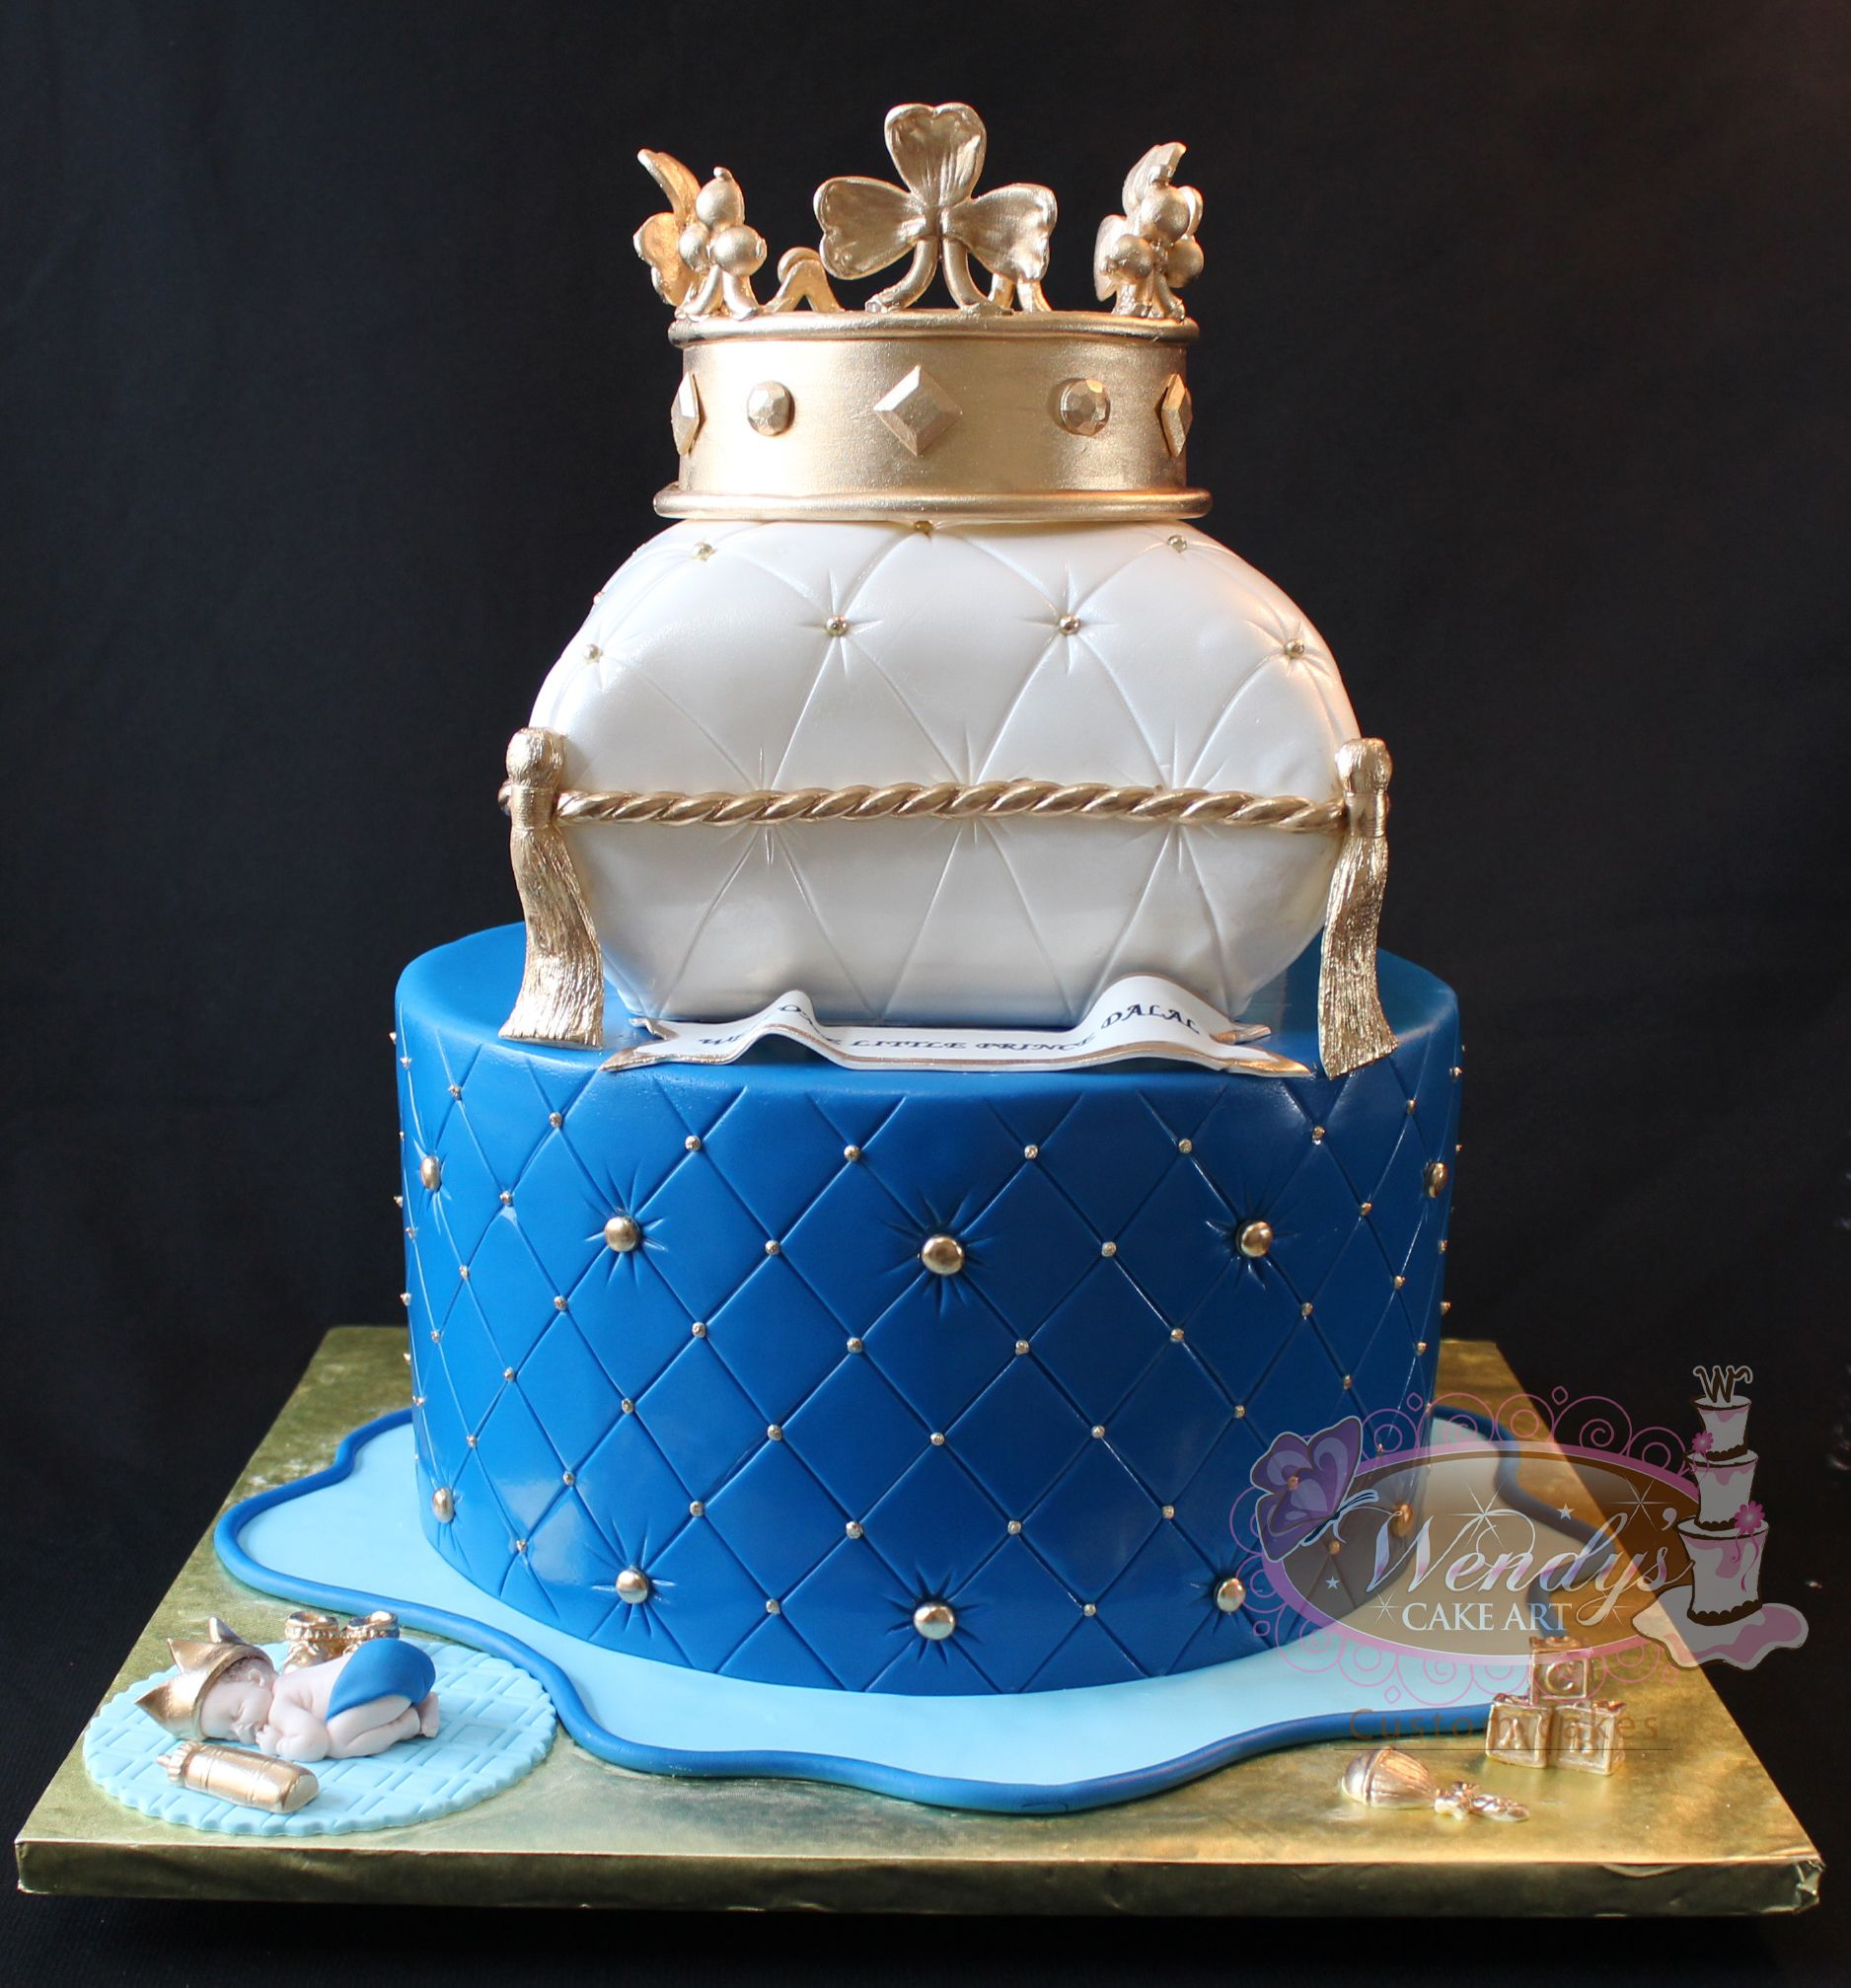 Crown And Pillow Cake From Wendyscakeart Com Cakes